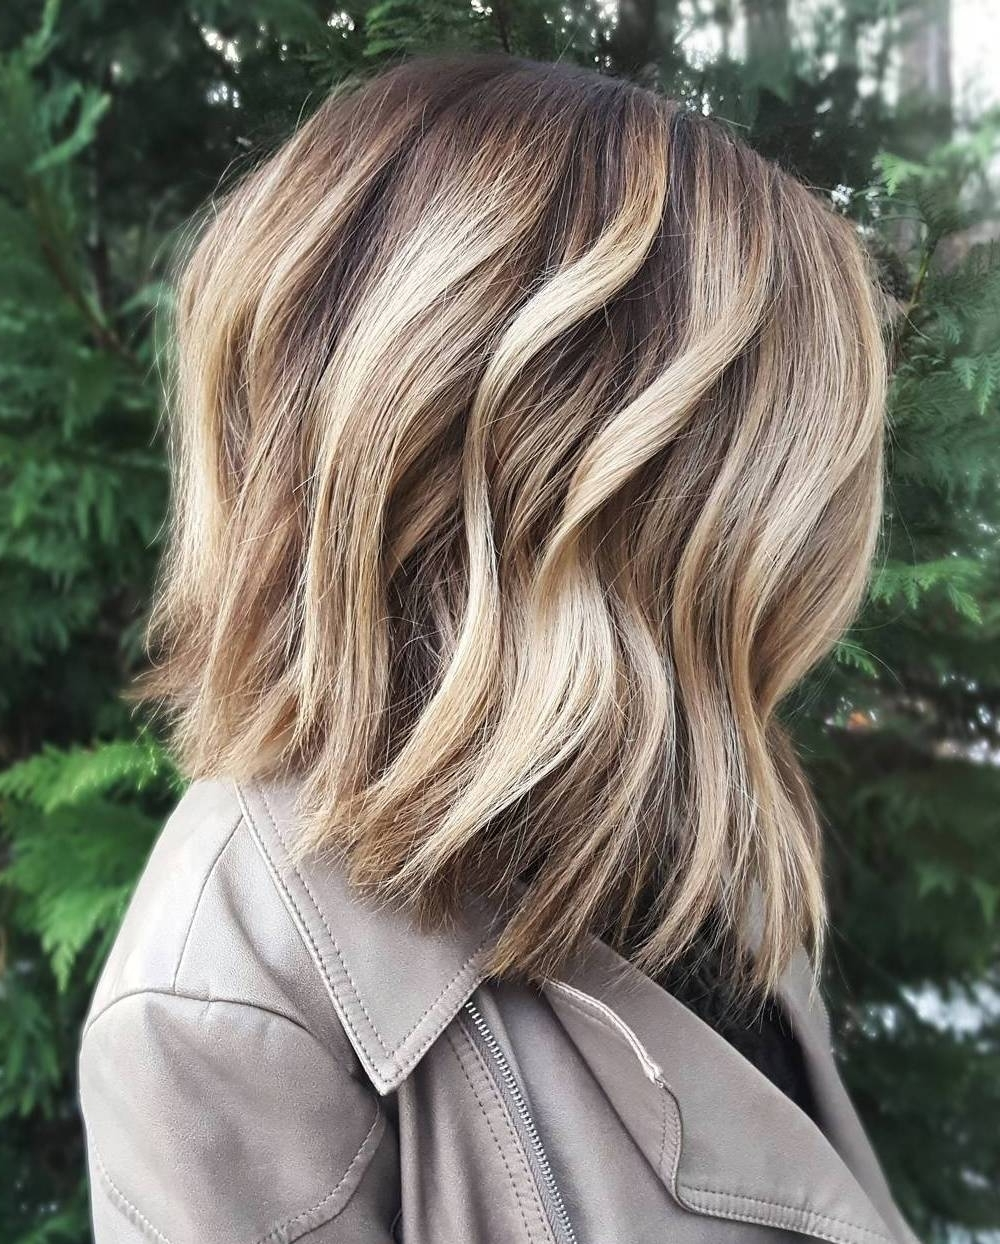 20 Dirty Blonde Hair Ideas That Work On Everyone With Well Known Dishwater Waves Blonde Hairstyles (View 12 of 20)